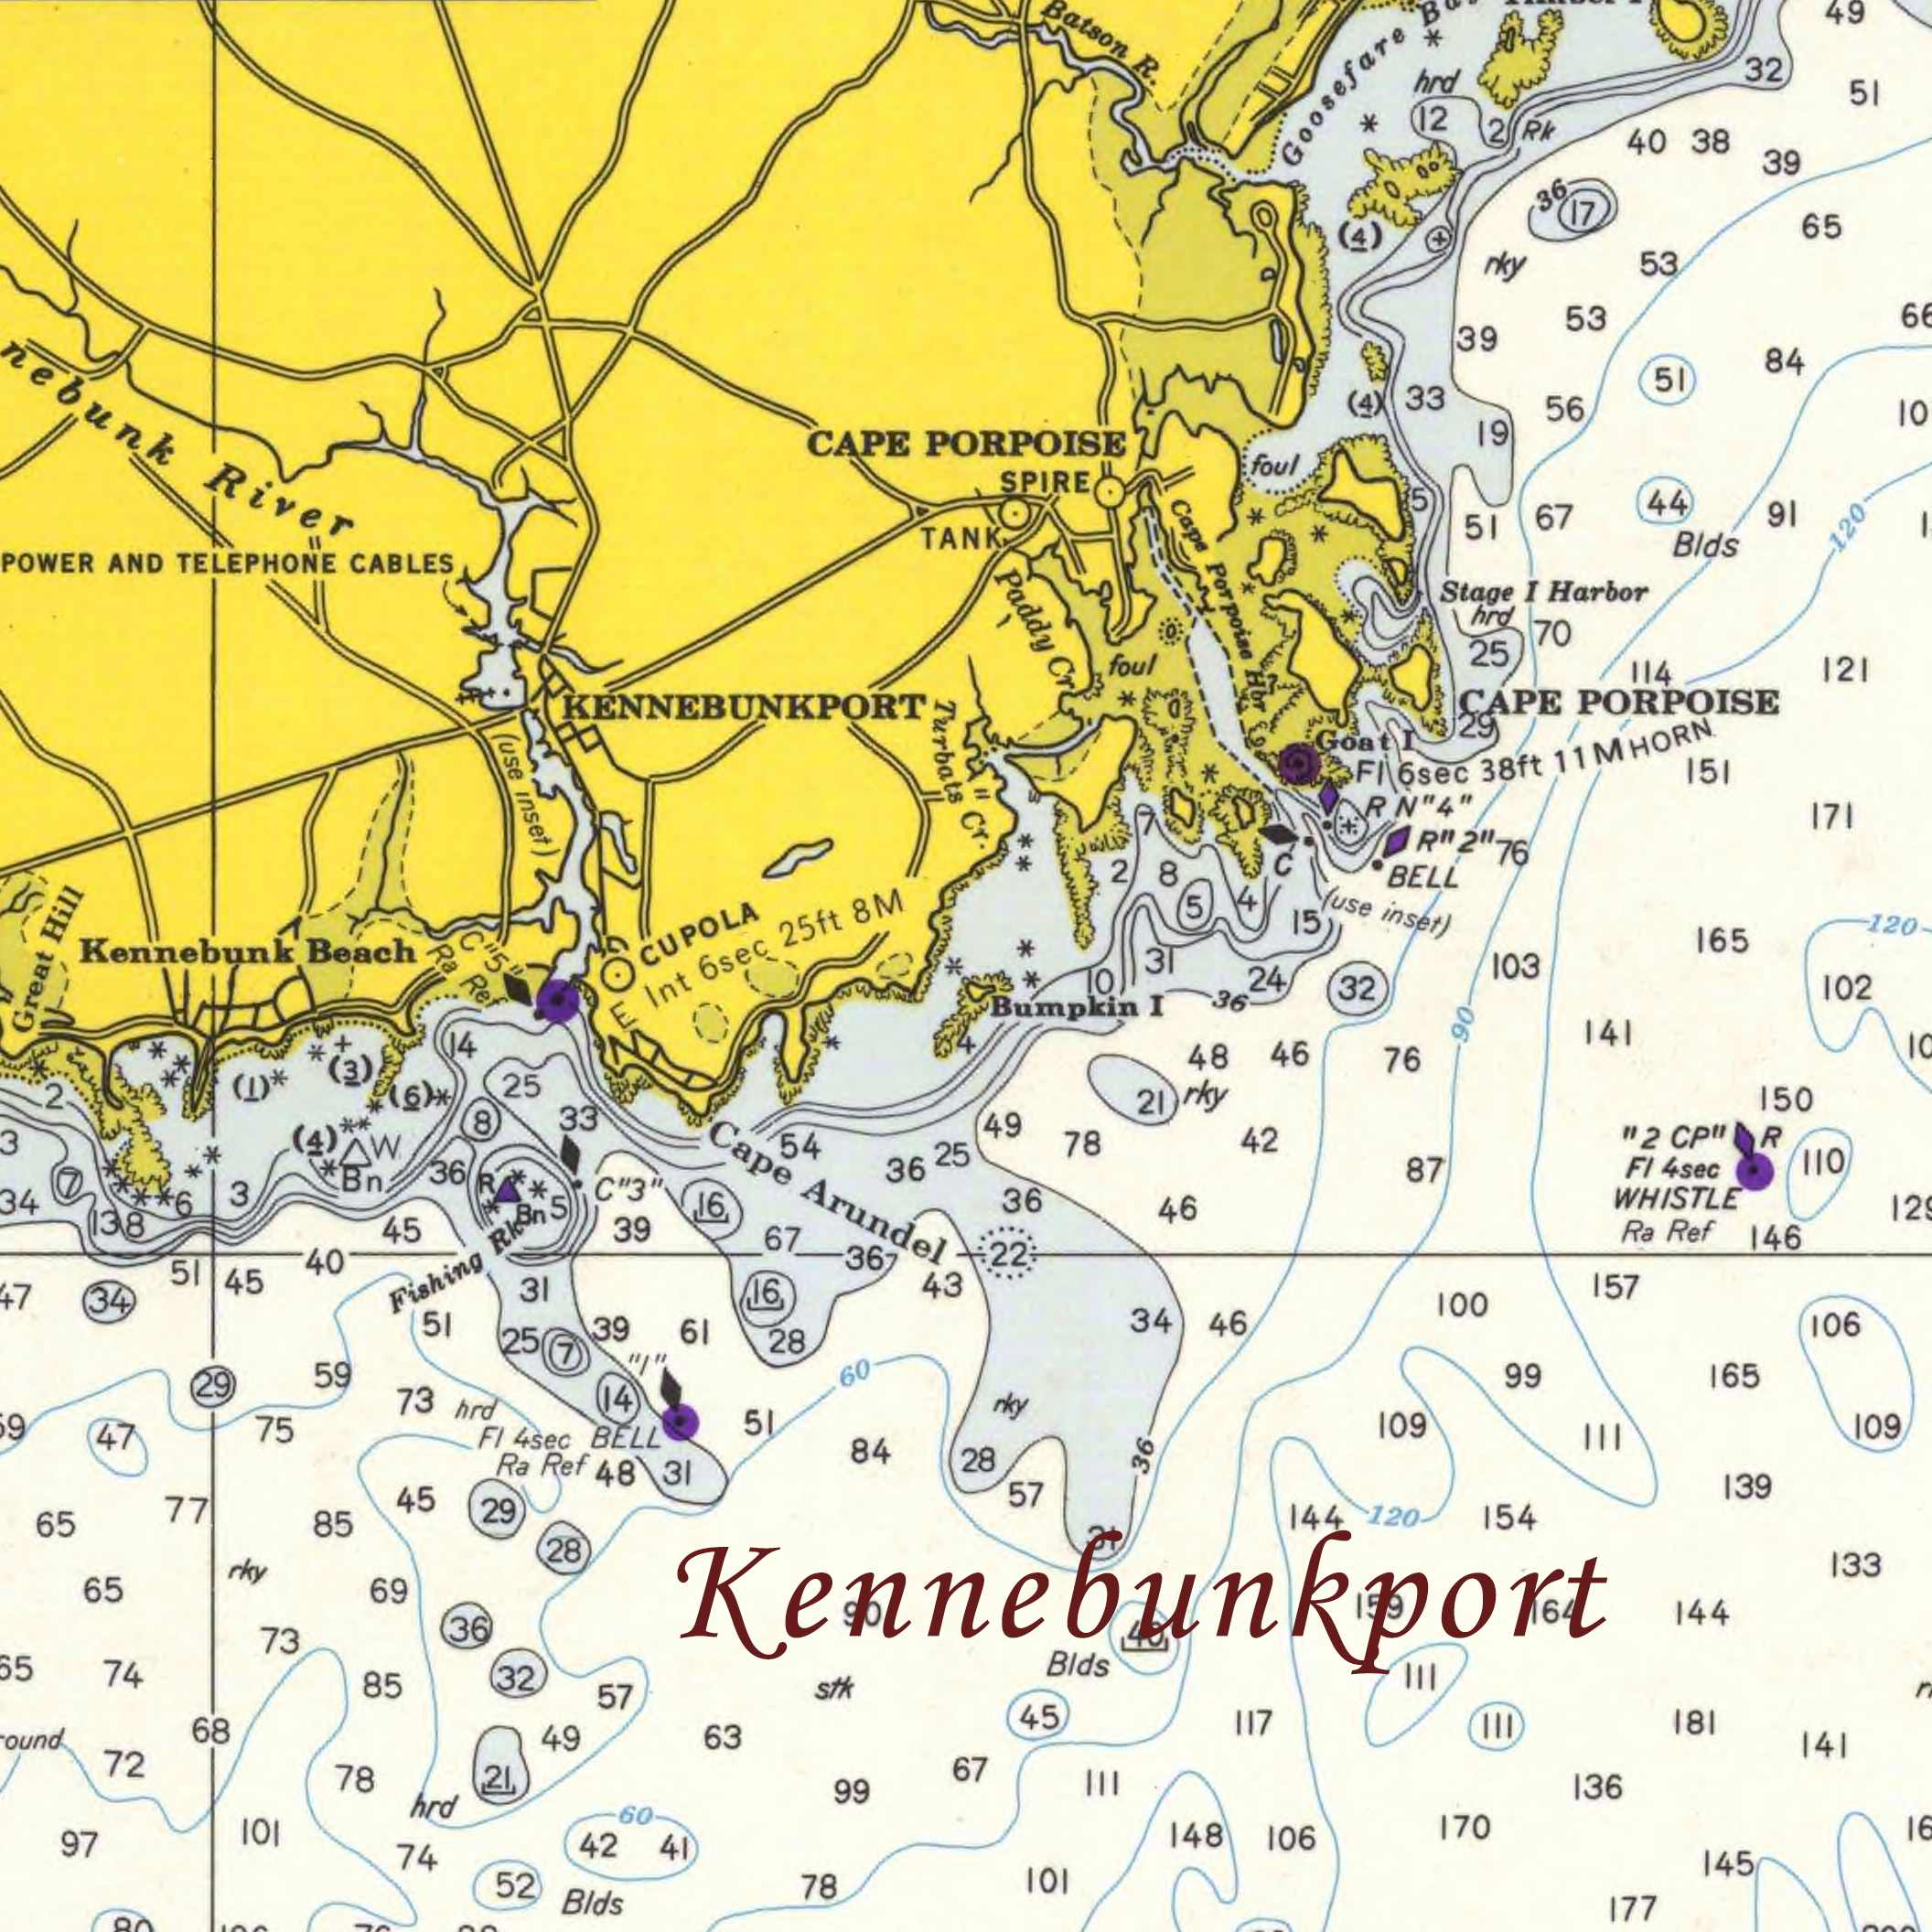 AB2749-CO kennebunk chart s2s square.jpg